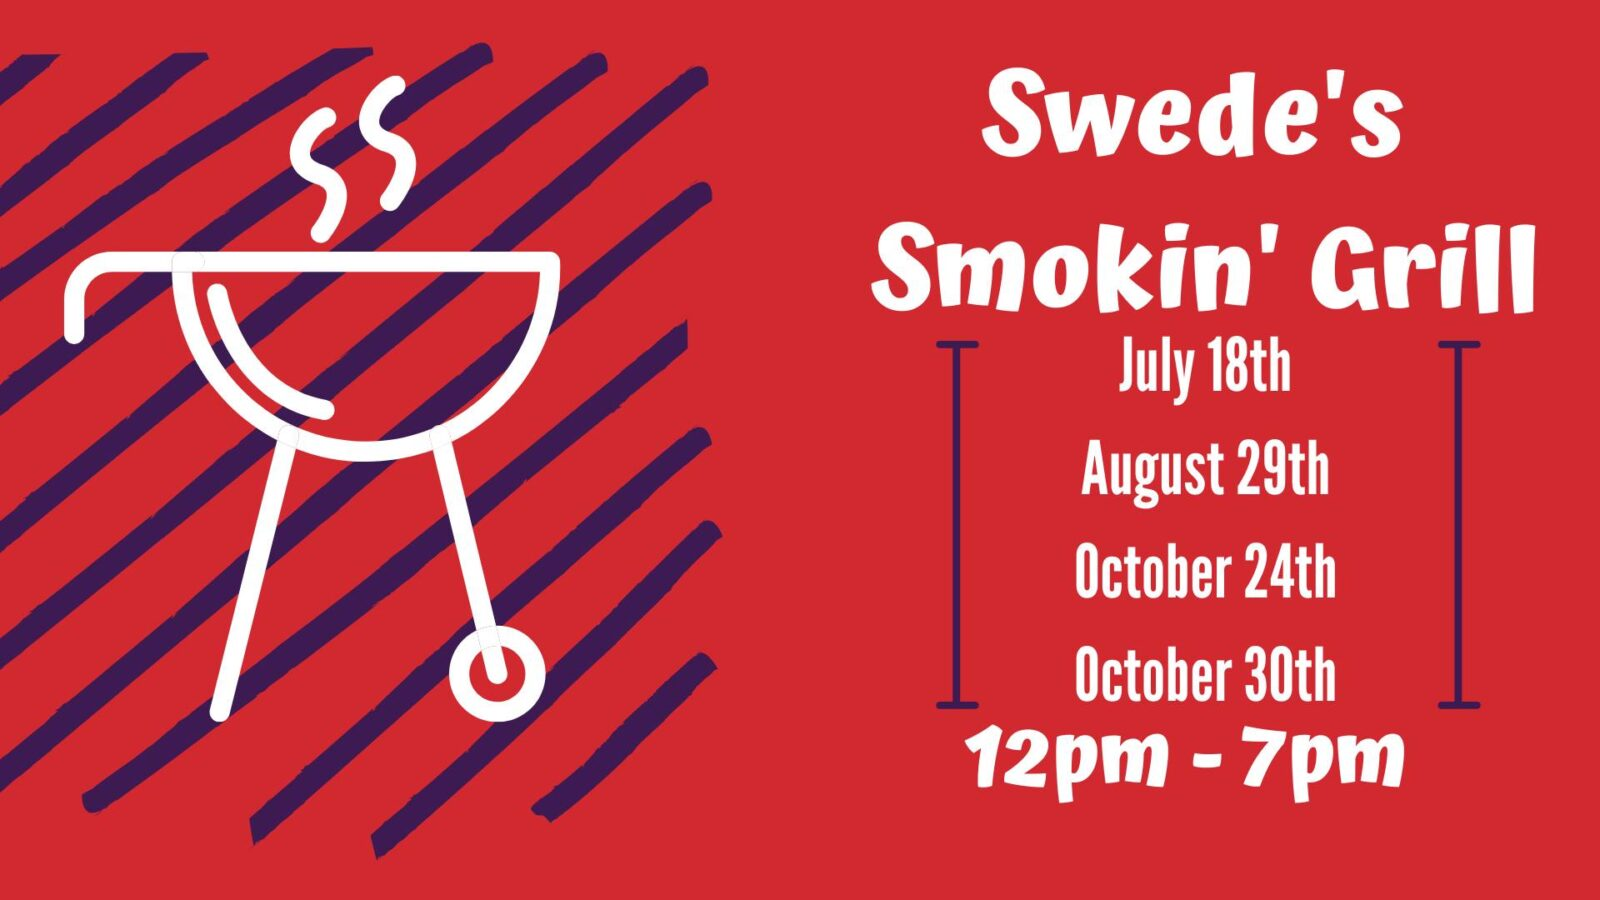 Swede's Smokin' Grill at Badger Hill